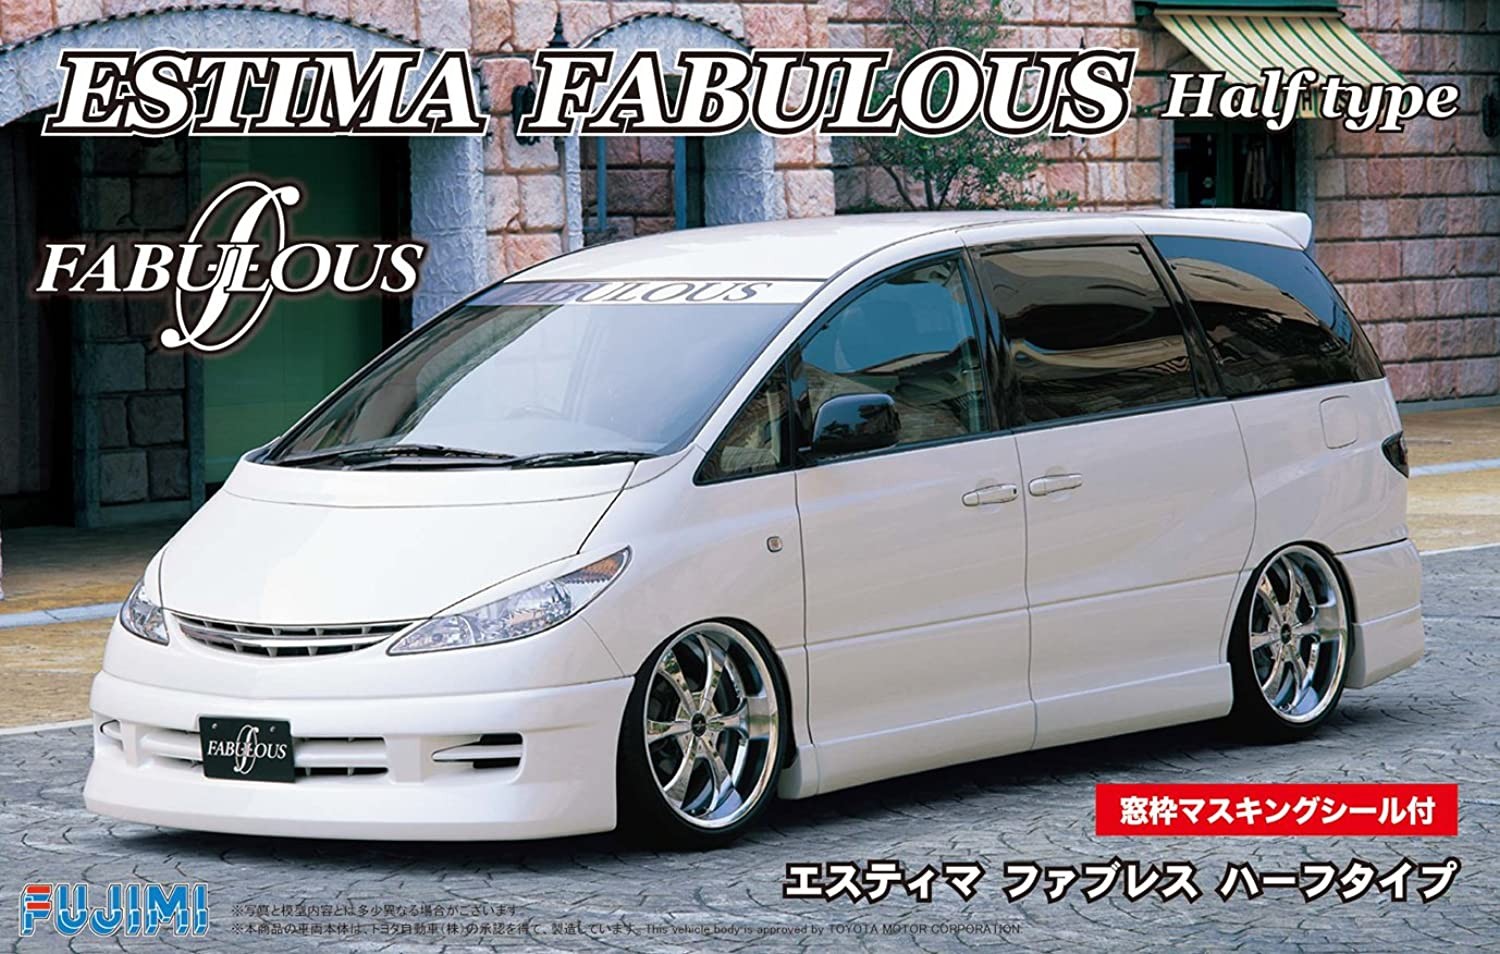 1 24 inch up series No.71 Toyota Estima fabless half type